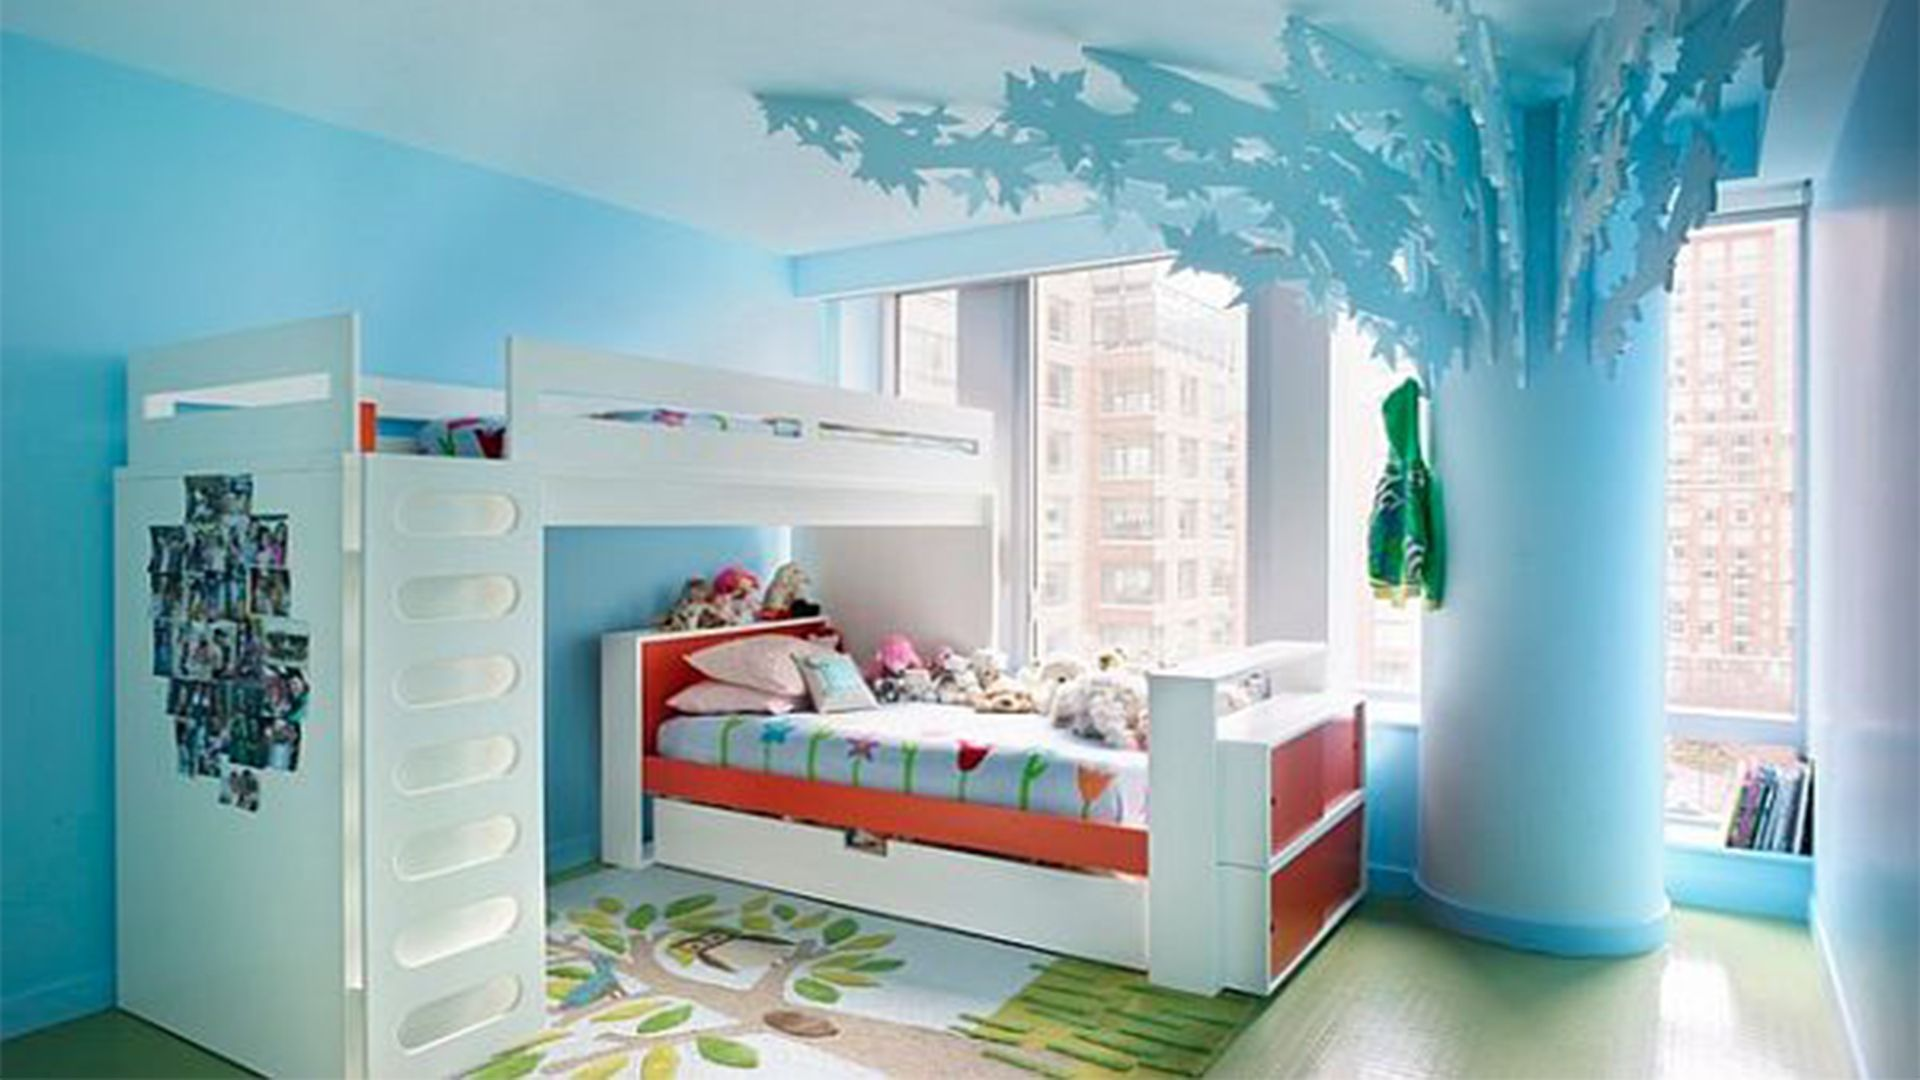 tween for teenagers bedroom girls furniture modern design dayrimerhdayrime unique rhwriteteenscom